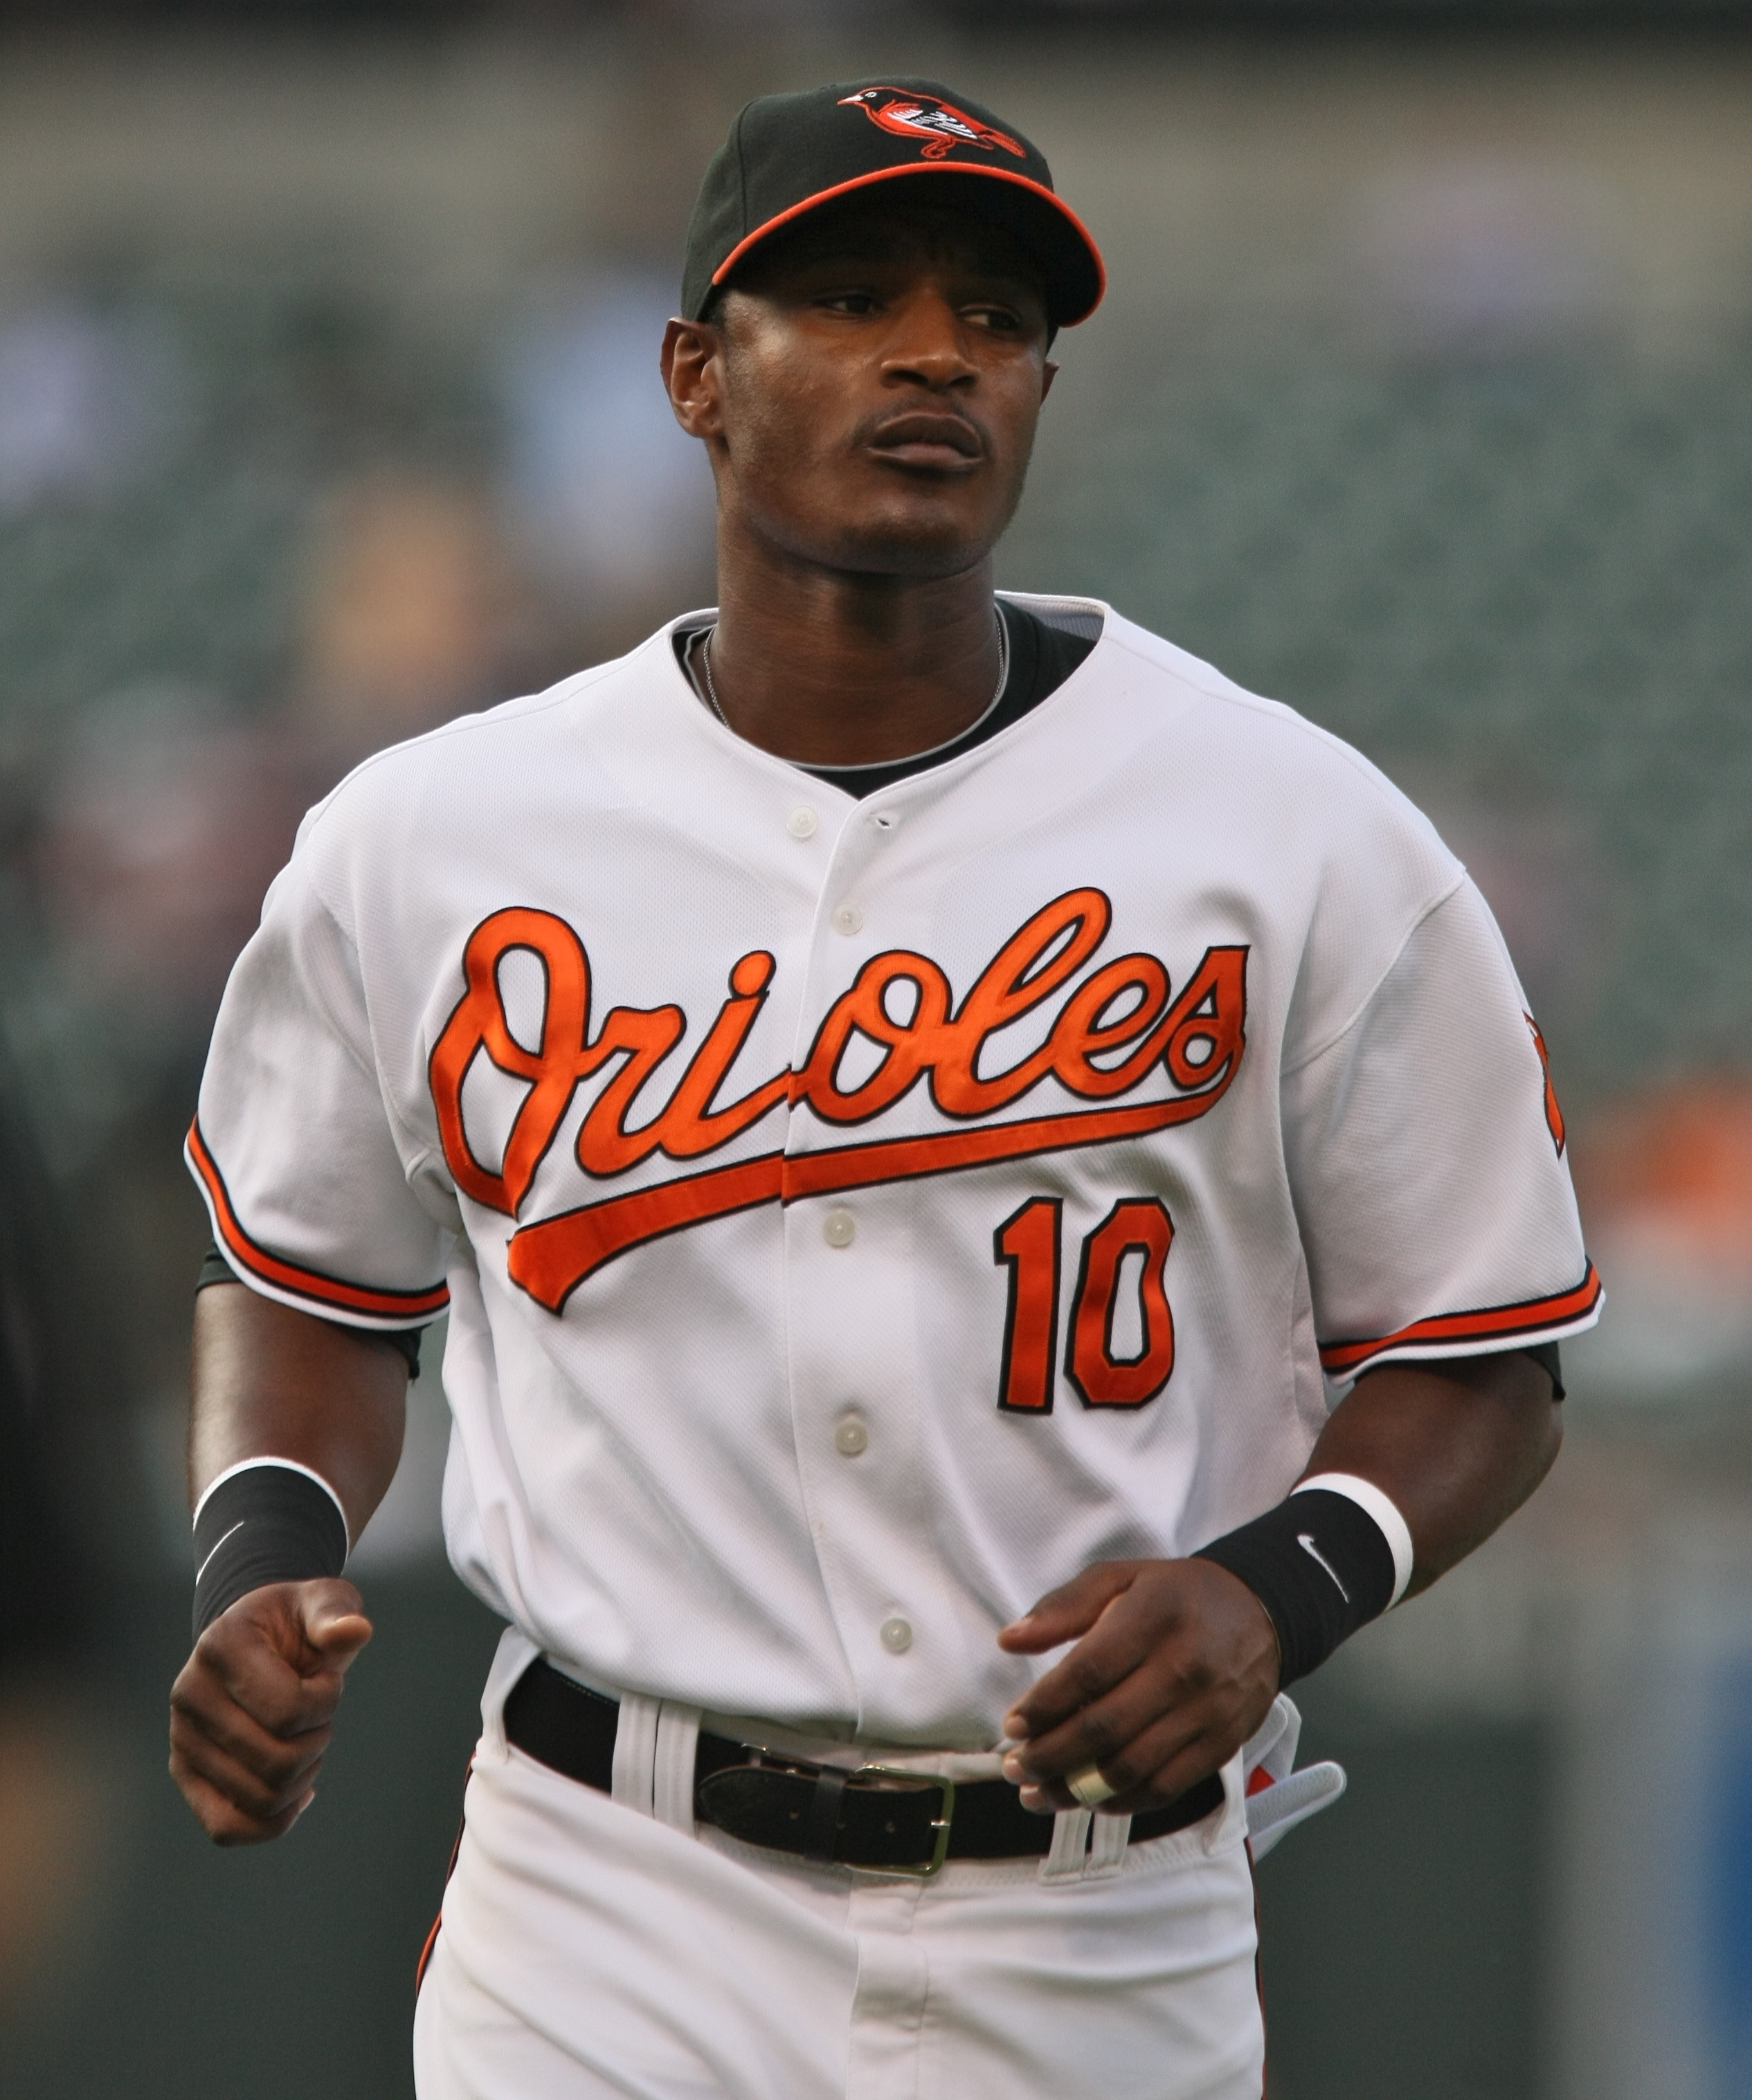 Adam_Jones_on_June_18,_2009.jpg